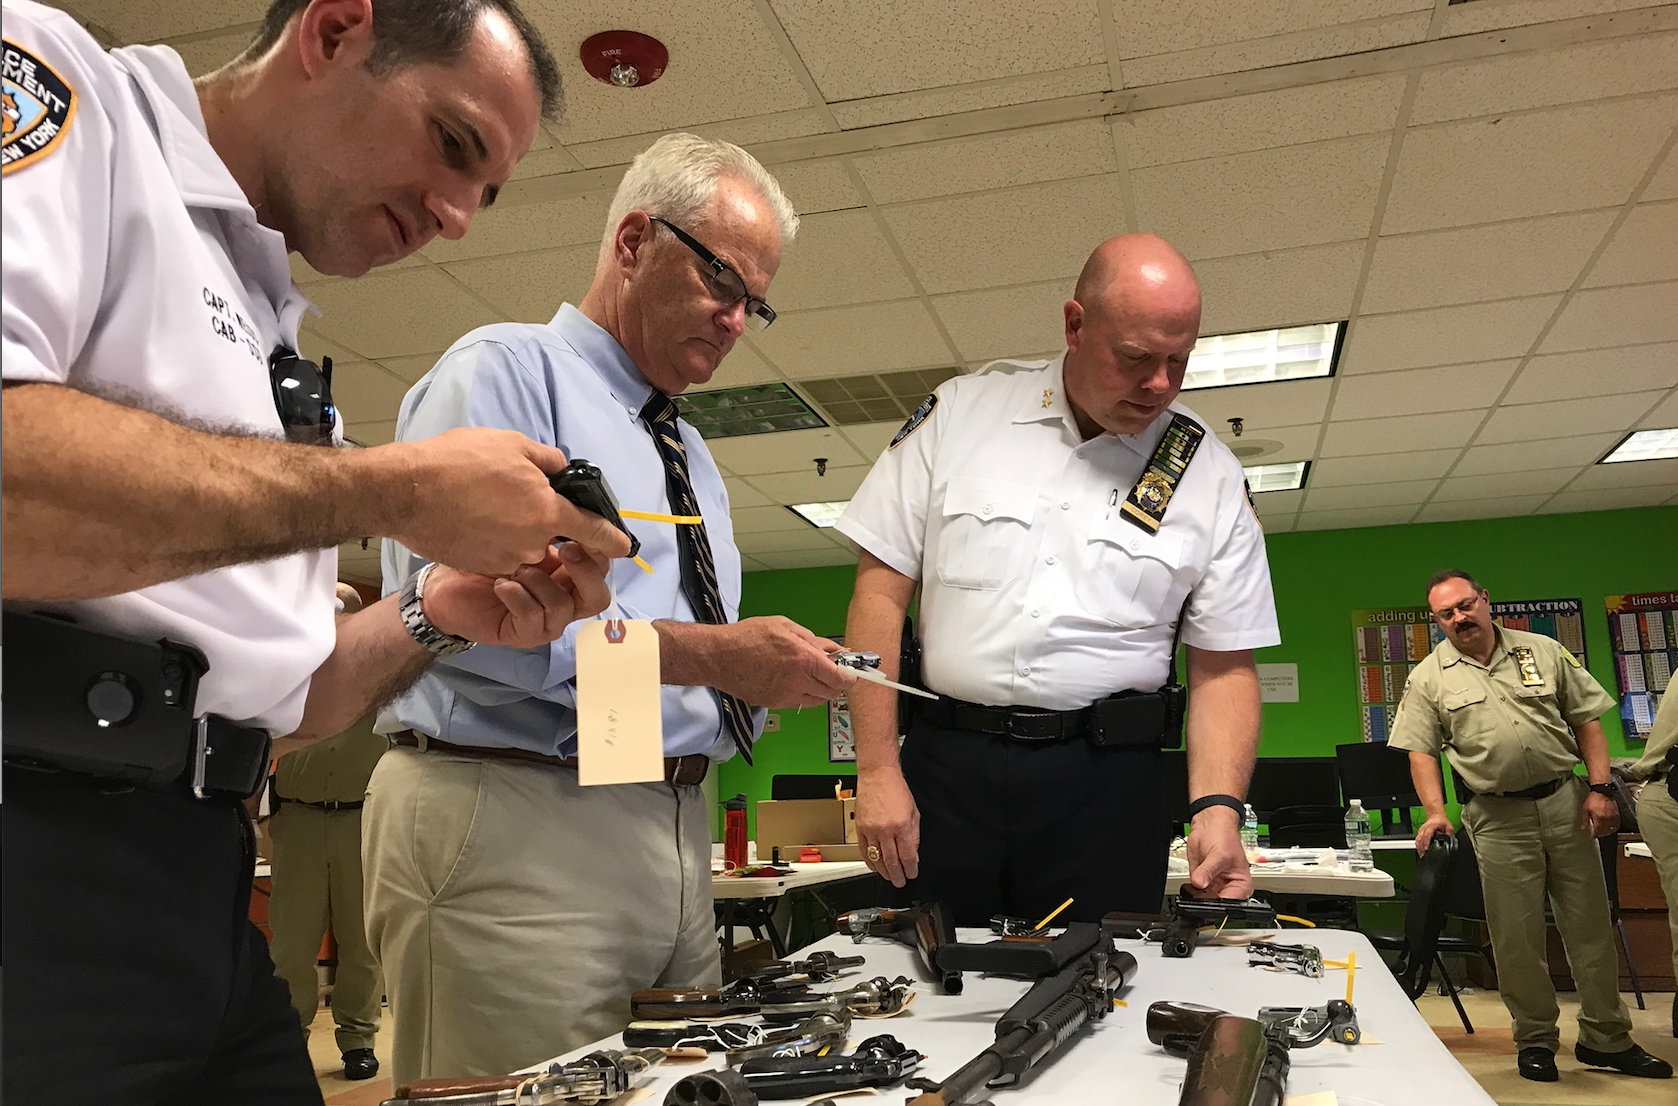 Dangerous haul of guns turned over to police, D.A. McMahon in 'Cash for Guns' initiative